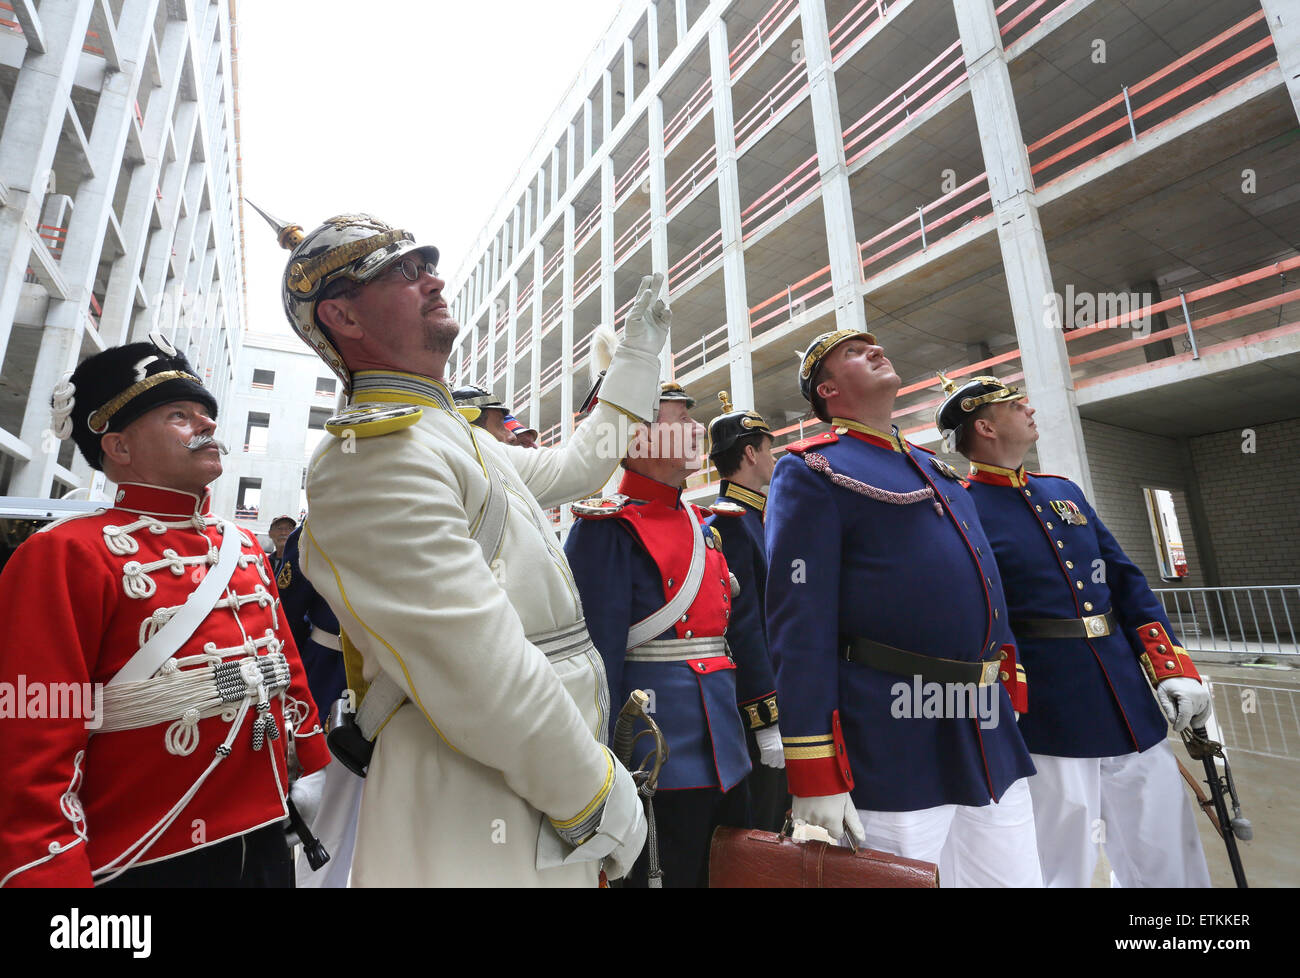 Berlin, Germany. 14th June, 2015. Members of a club wear uniforms of the former Prussian army as they visit the construction site of the Berlin City Palace in Berlin, Germany, 14 June 2015. The site was open to the public during the 'Open Construction Site Day' for two days. PHOTO: STEPHANIE PILICK/dpa/Alamy Live News Stock Photo